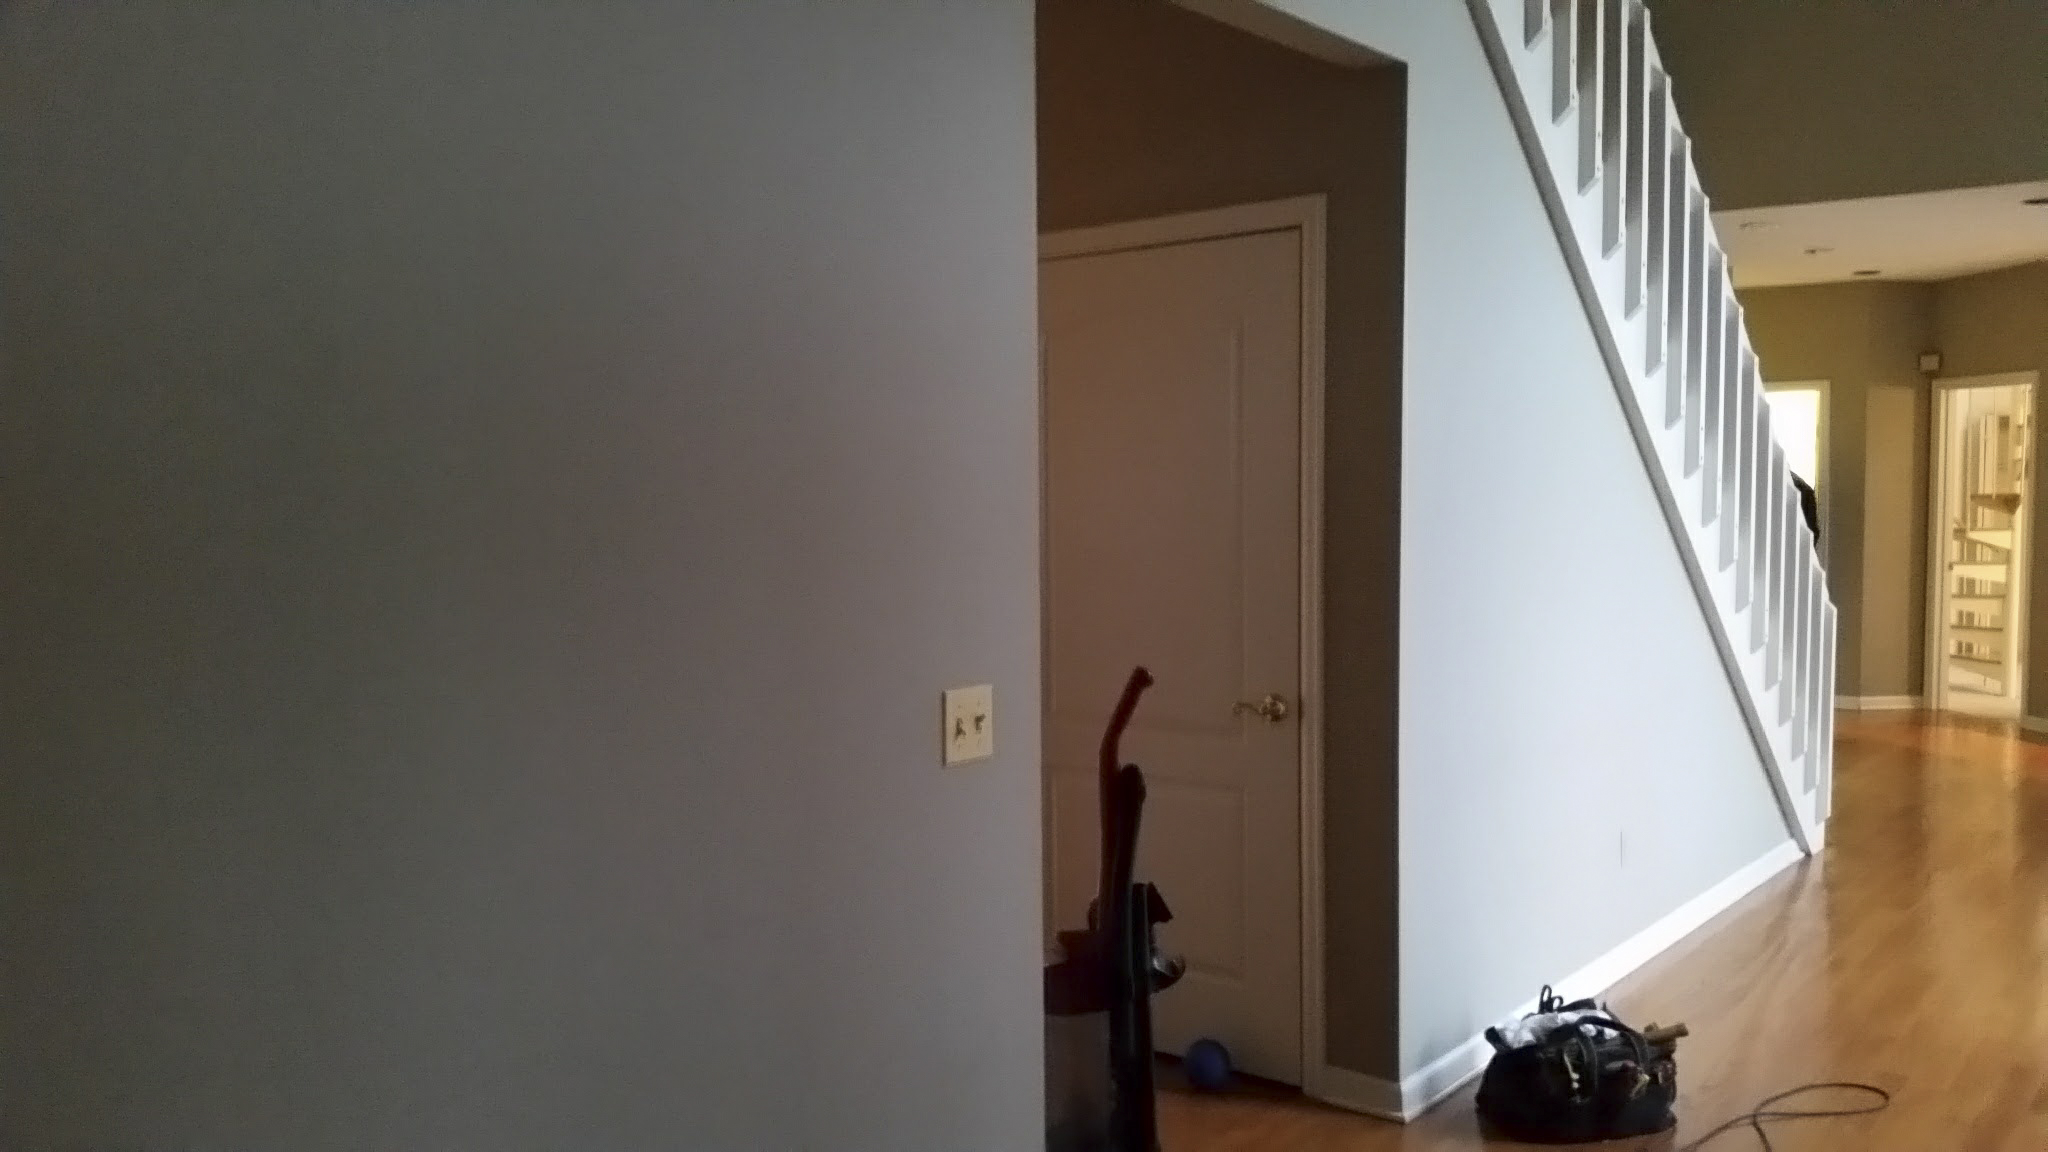 Existing cased opening and painted foyer.